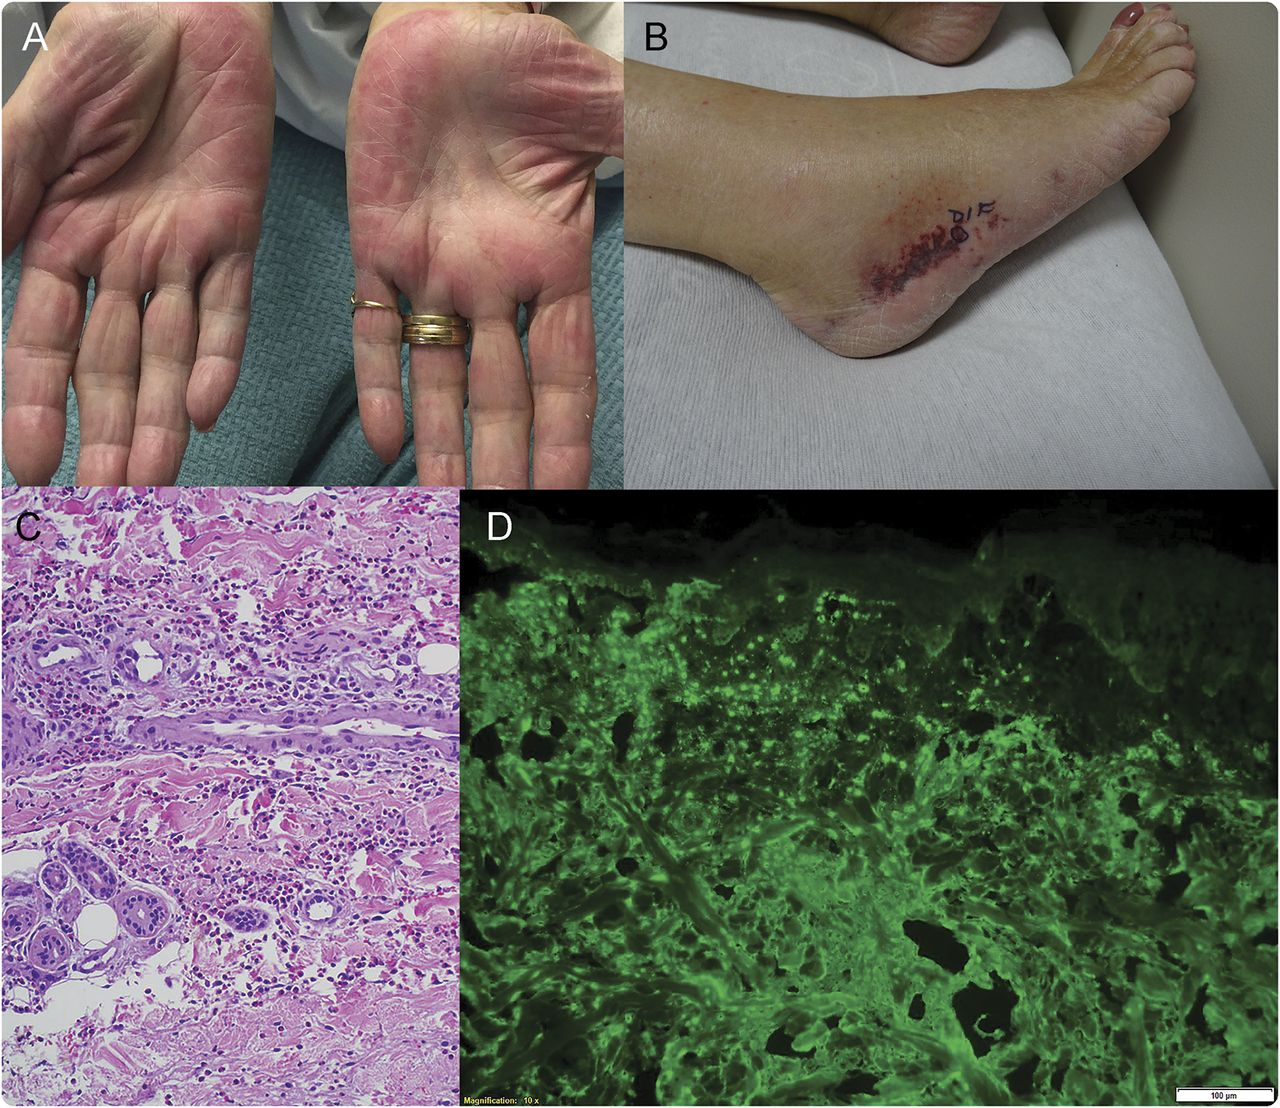 Clinical Reasoning A 74 Year Old Woman With Bilateral Foot